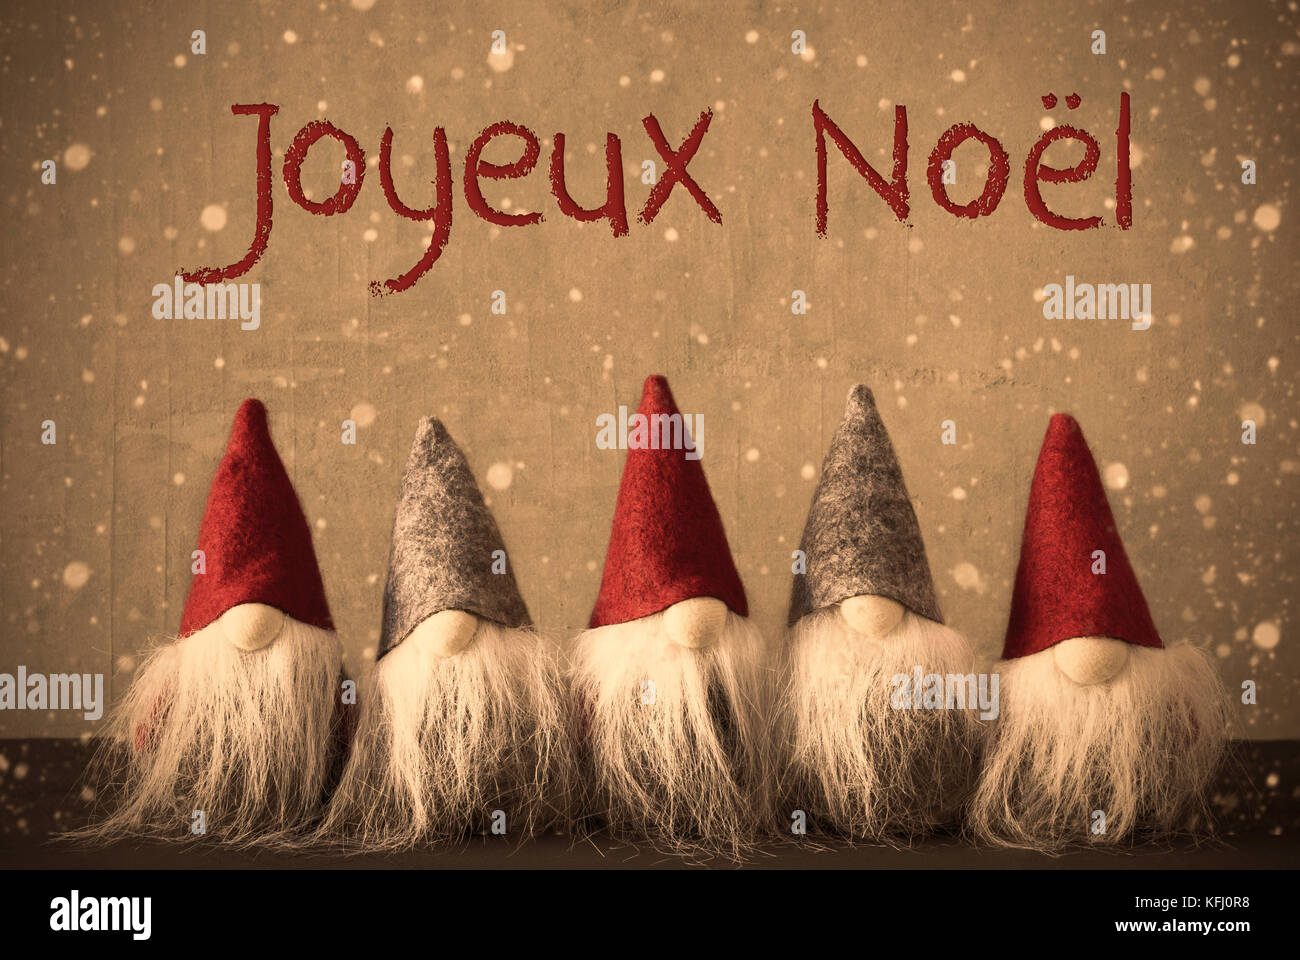 Www Joyeux Noel.Gnomes With French Text Joyeux Noel Means Merry Christmas